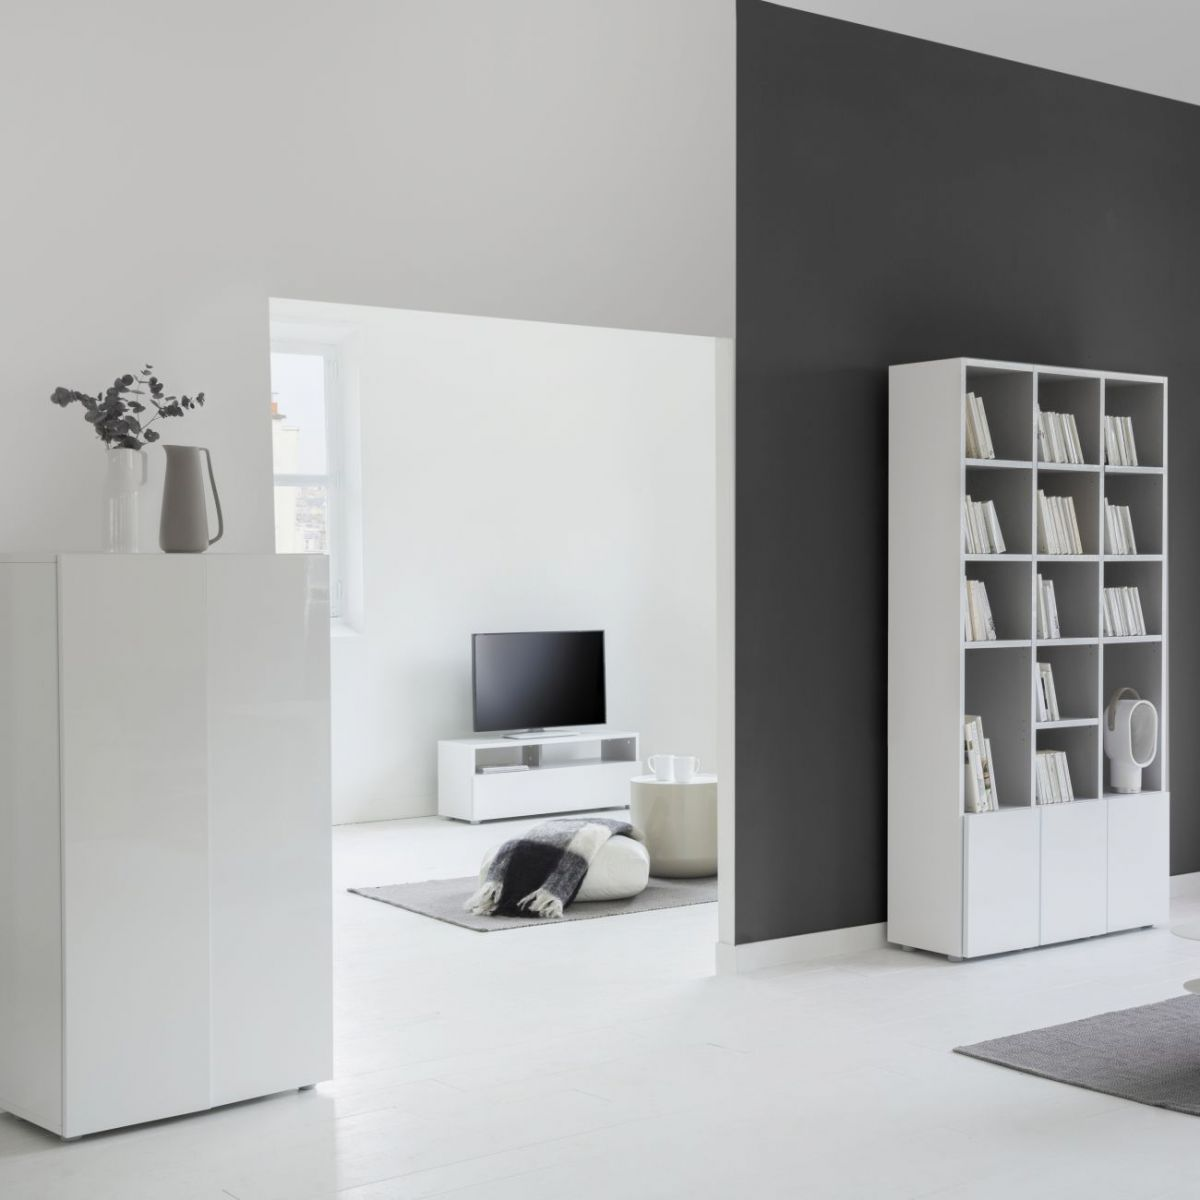 kubrik buffet haut blanc laqu habitat soldes buffet. Black Bedroom Furniture Sets. Home Design Ideas